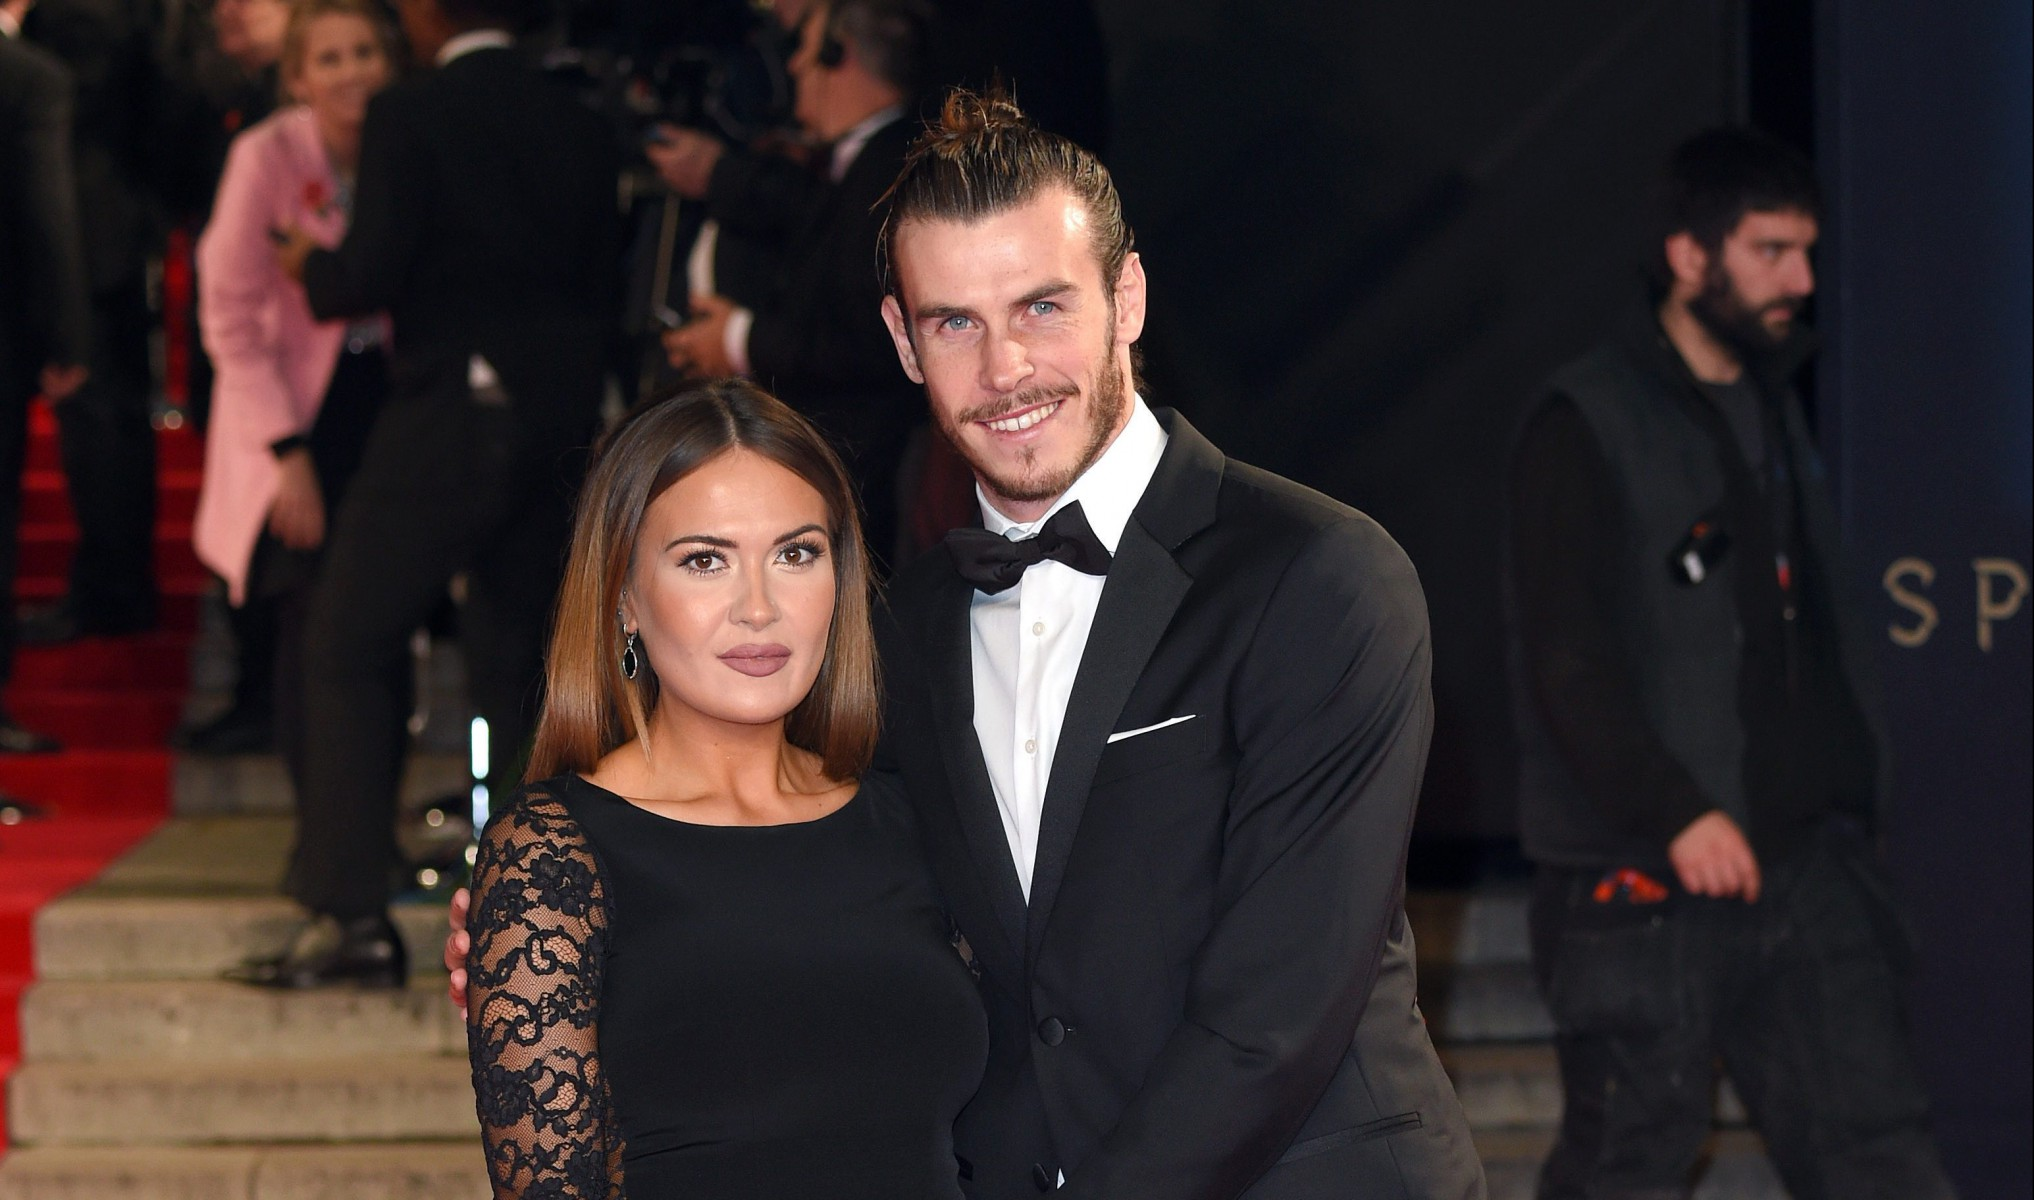 Gareth Bale secretly wed his childhood sweetheart Emma Rhys-Jones, 27, in front of just 60 family and pals